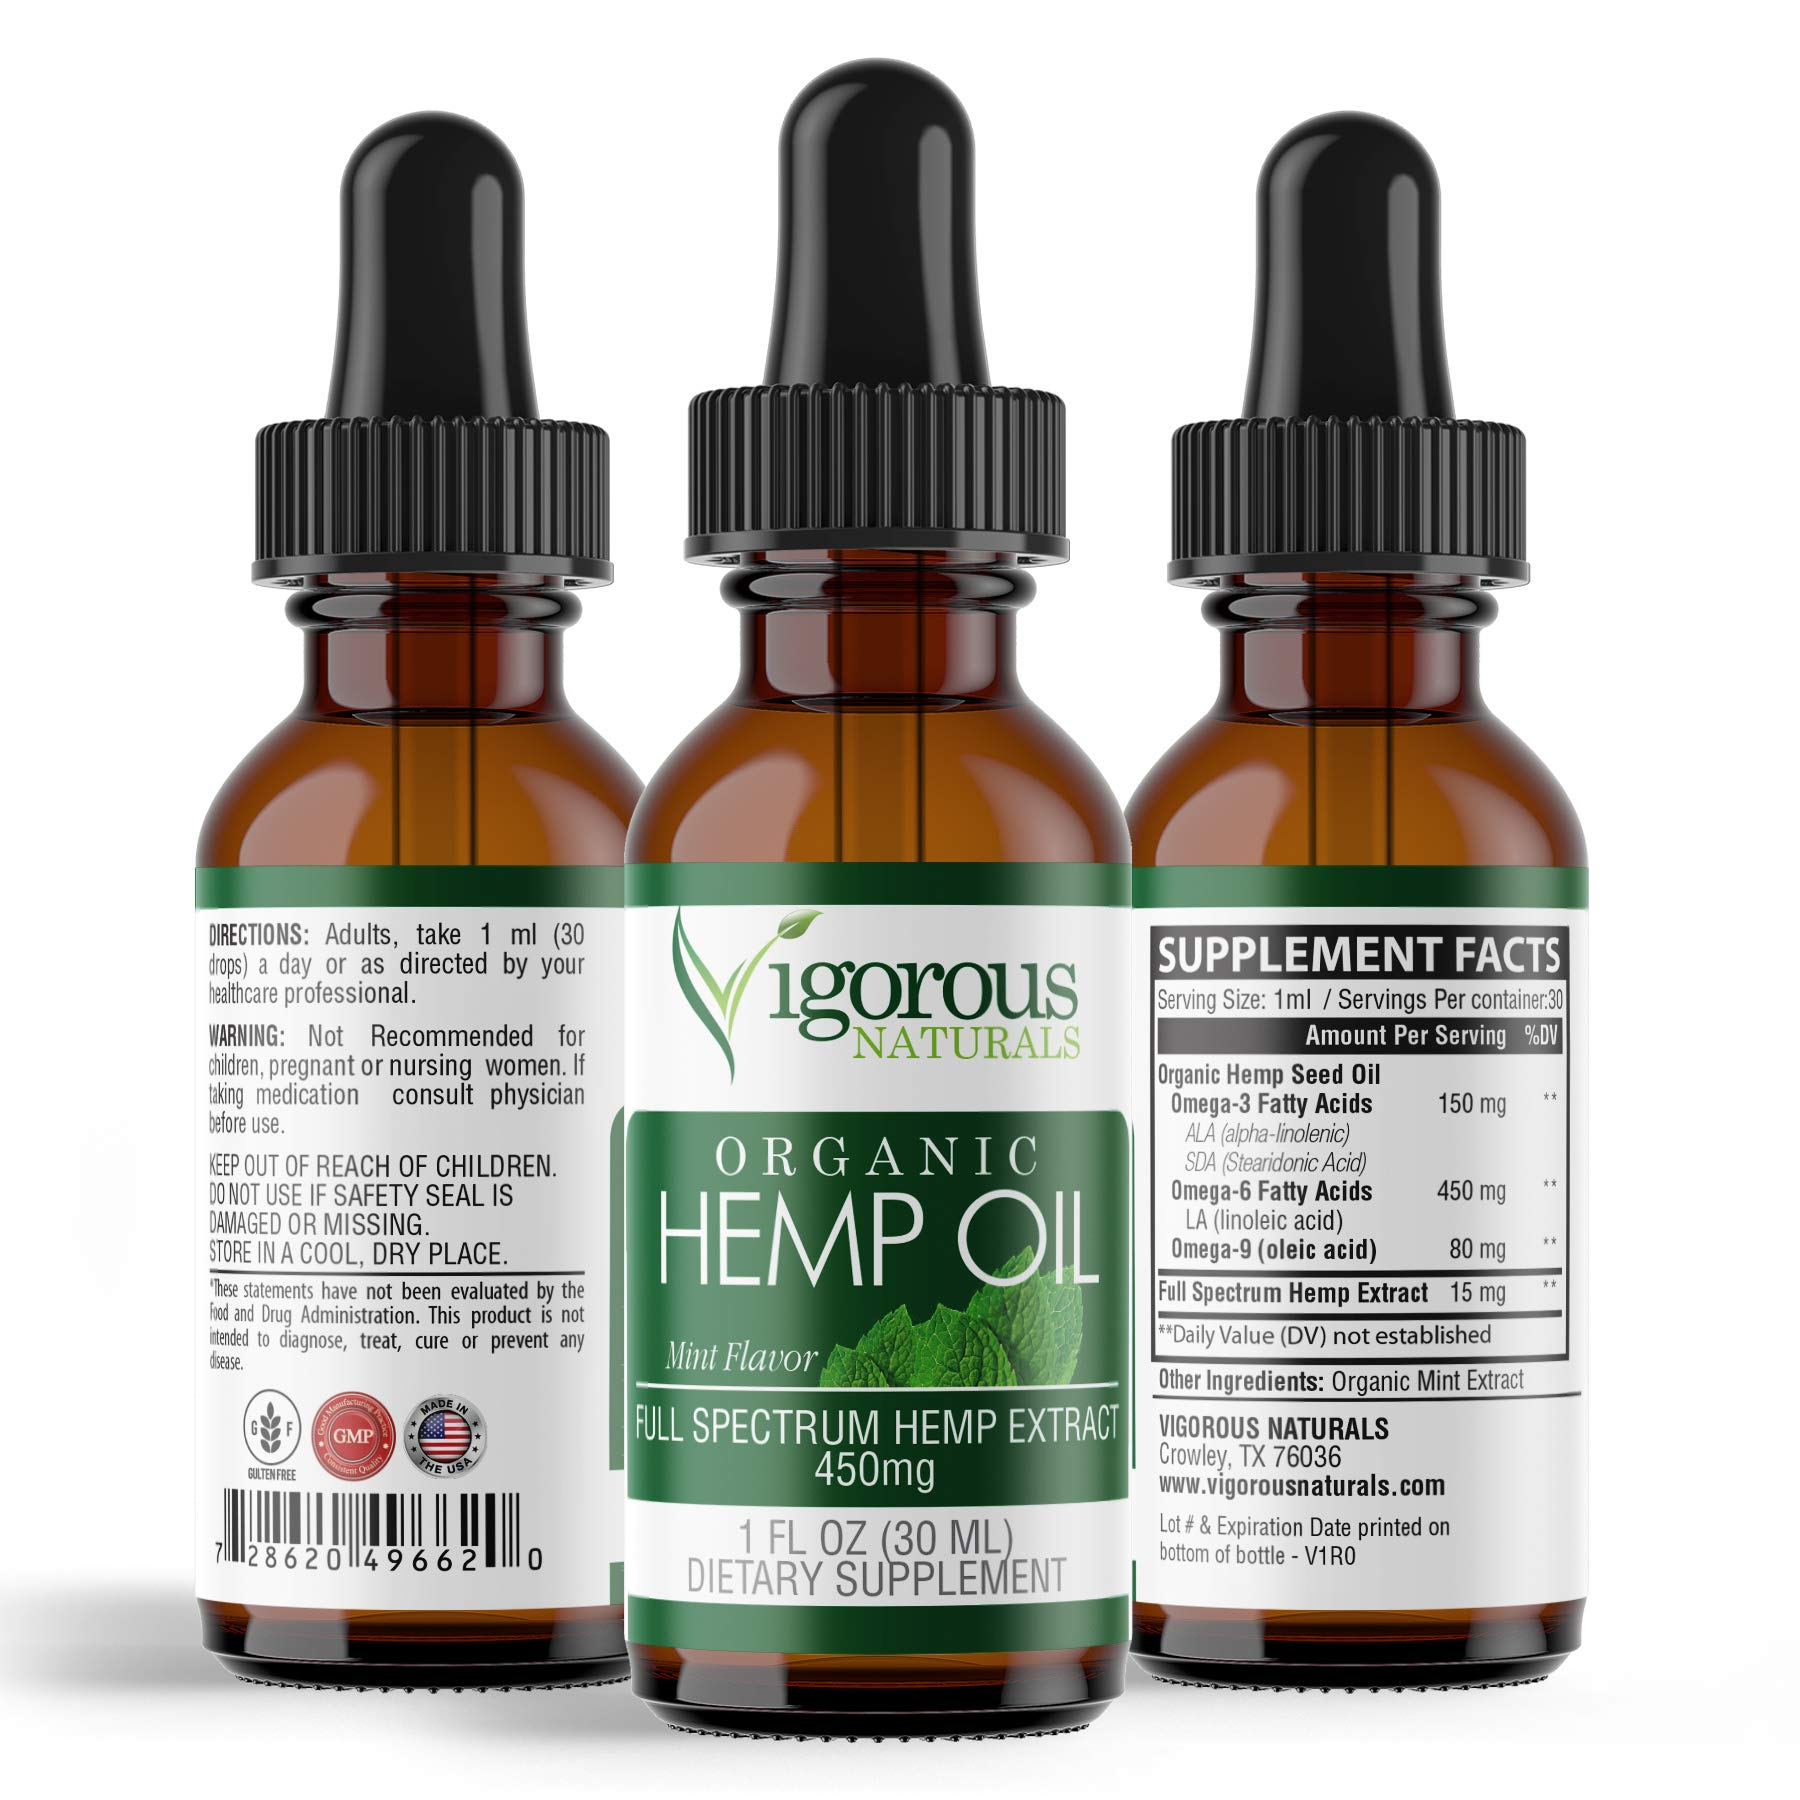 Vigorous Naturals Hemp Oil Drops- 450mg Full Spectrum for Pain Relief & Anti Anxiety Support- Natural Extract Seed Liquid Supplement- Helps Stress, Sleep, Inflammation, Mood- Organic Mint Flavor